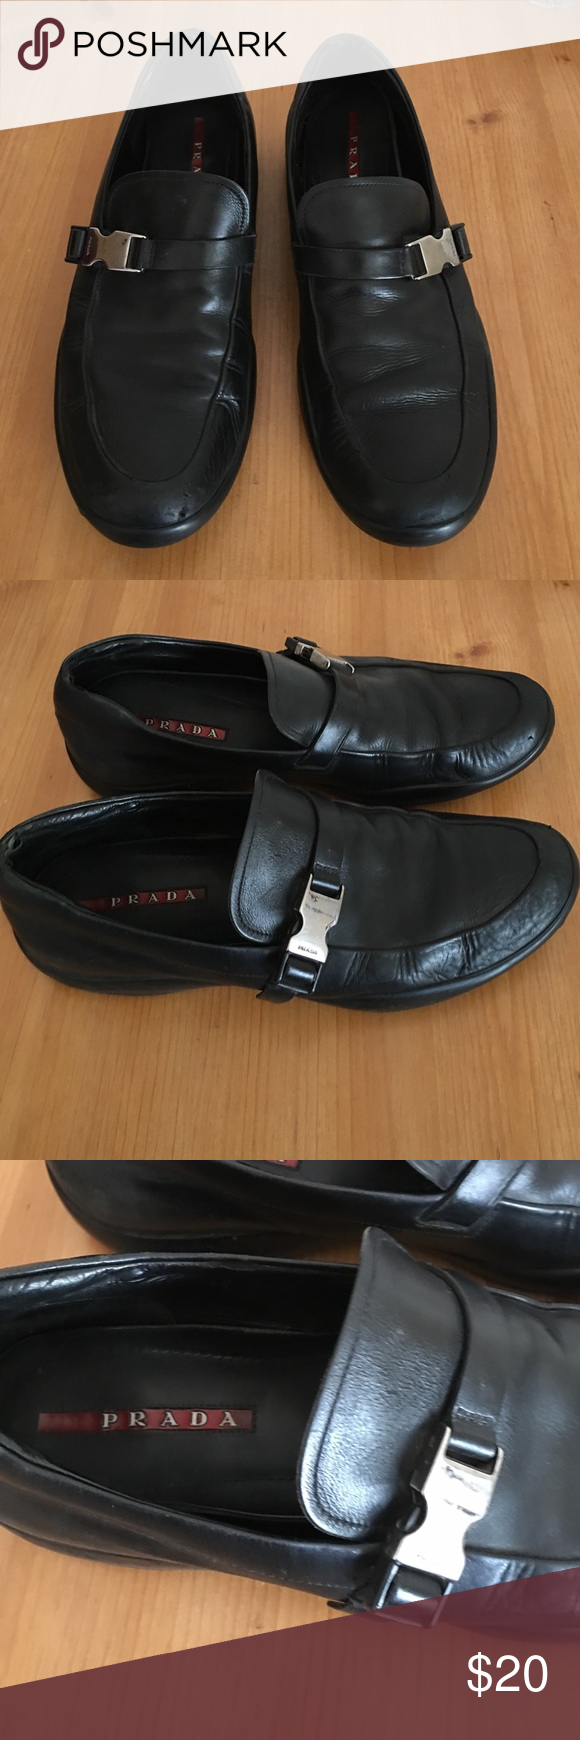 a596bf5addb PRADA MENS BLACK BUCKLE LEATHER LOAFERS 8 M PREOWNED WORN REMOVABLE INSOLES  WHICH SHOULD BE SWITCHED